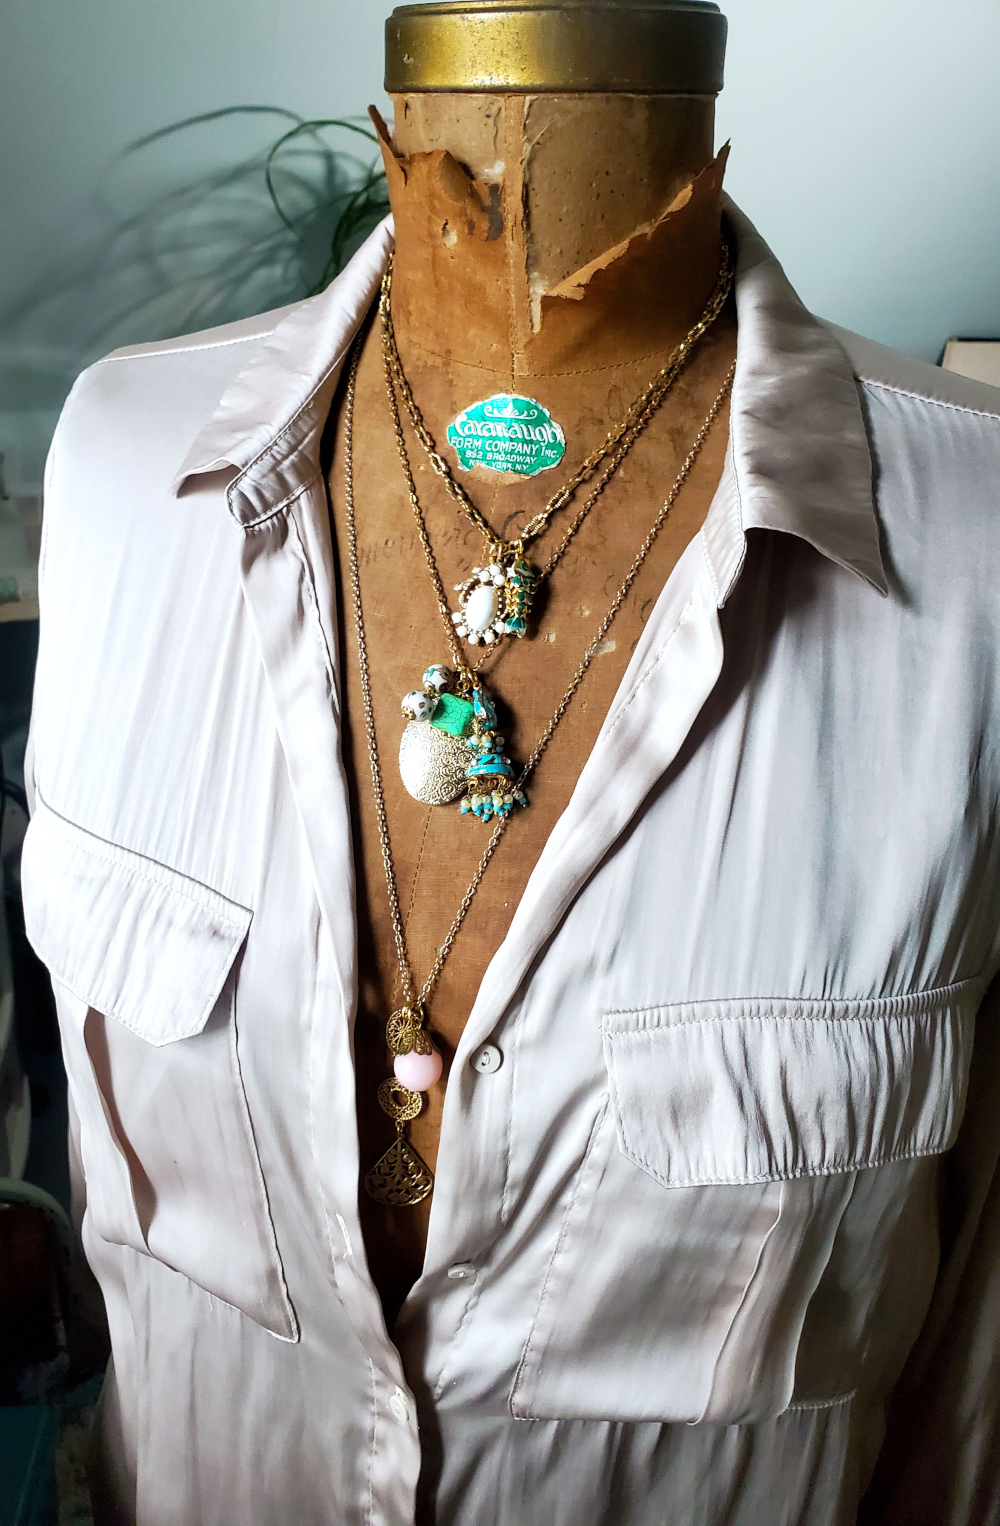 Make your own charm necklace